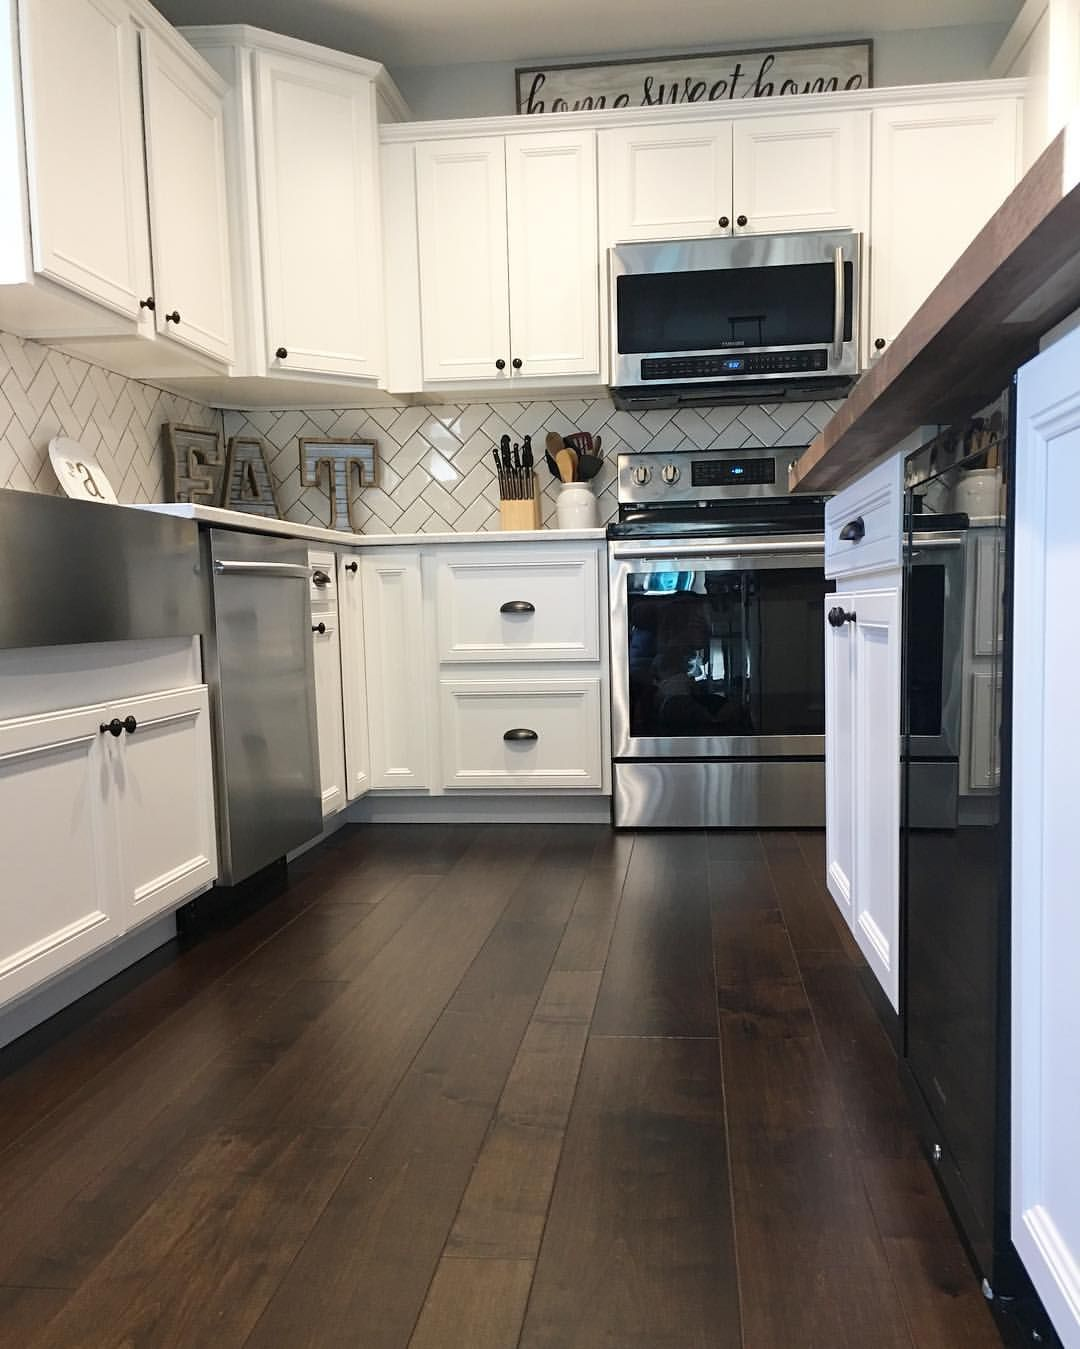 Split Level Fixer Upper Kitchen Remodel White Cabinets Subway Tile Quartz Countertops Bu Trendy Kitchen Tile Replacing Kitchen Countertops Kitchen Remodel